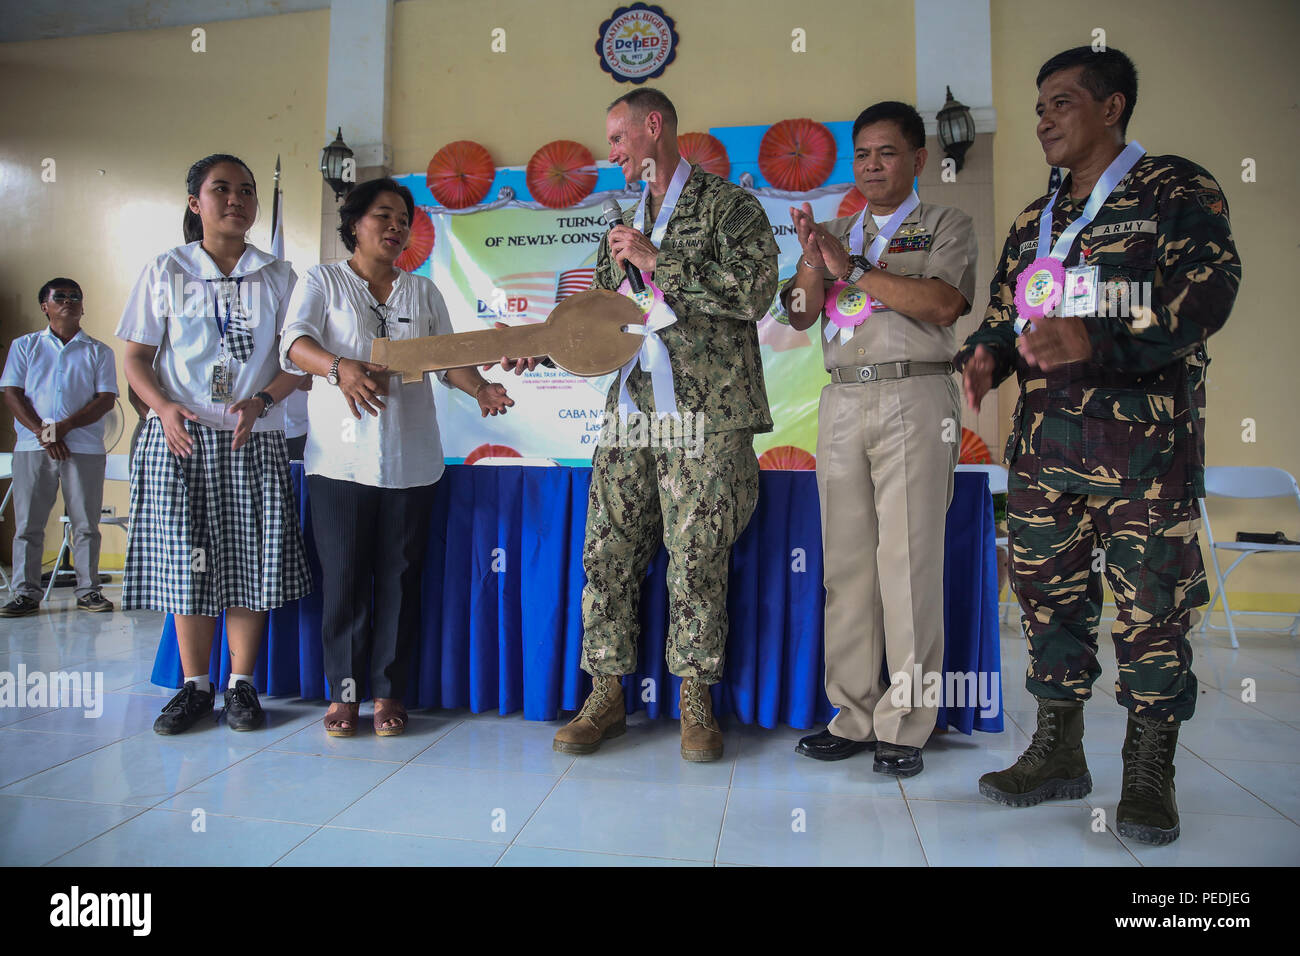 150810-M-GO800-558 SAN FERNANDO CITY, Philippines (Aug. 10, 2015) – Commodore, Task Force Forager Capt. James Meyer passes the key to Caba National High School to Josefina Samy during a ribbon cutting ceremony Aug. 10. Task Force Forager will be in the Philippines until Aug. 15 providing medical and engineering assistance. Task Force Forager, embarked aboard the Military Sealift Command joint high speed vessel USNS Millinocket (JHSV 3) is serving as the secondary platform for Pacific Partnership, led by an expeditionary command element from the Navy's 30th Naval Construction Regiment (30 NCR)  - Stock Image